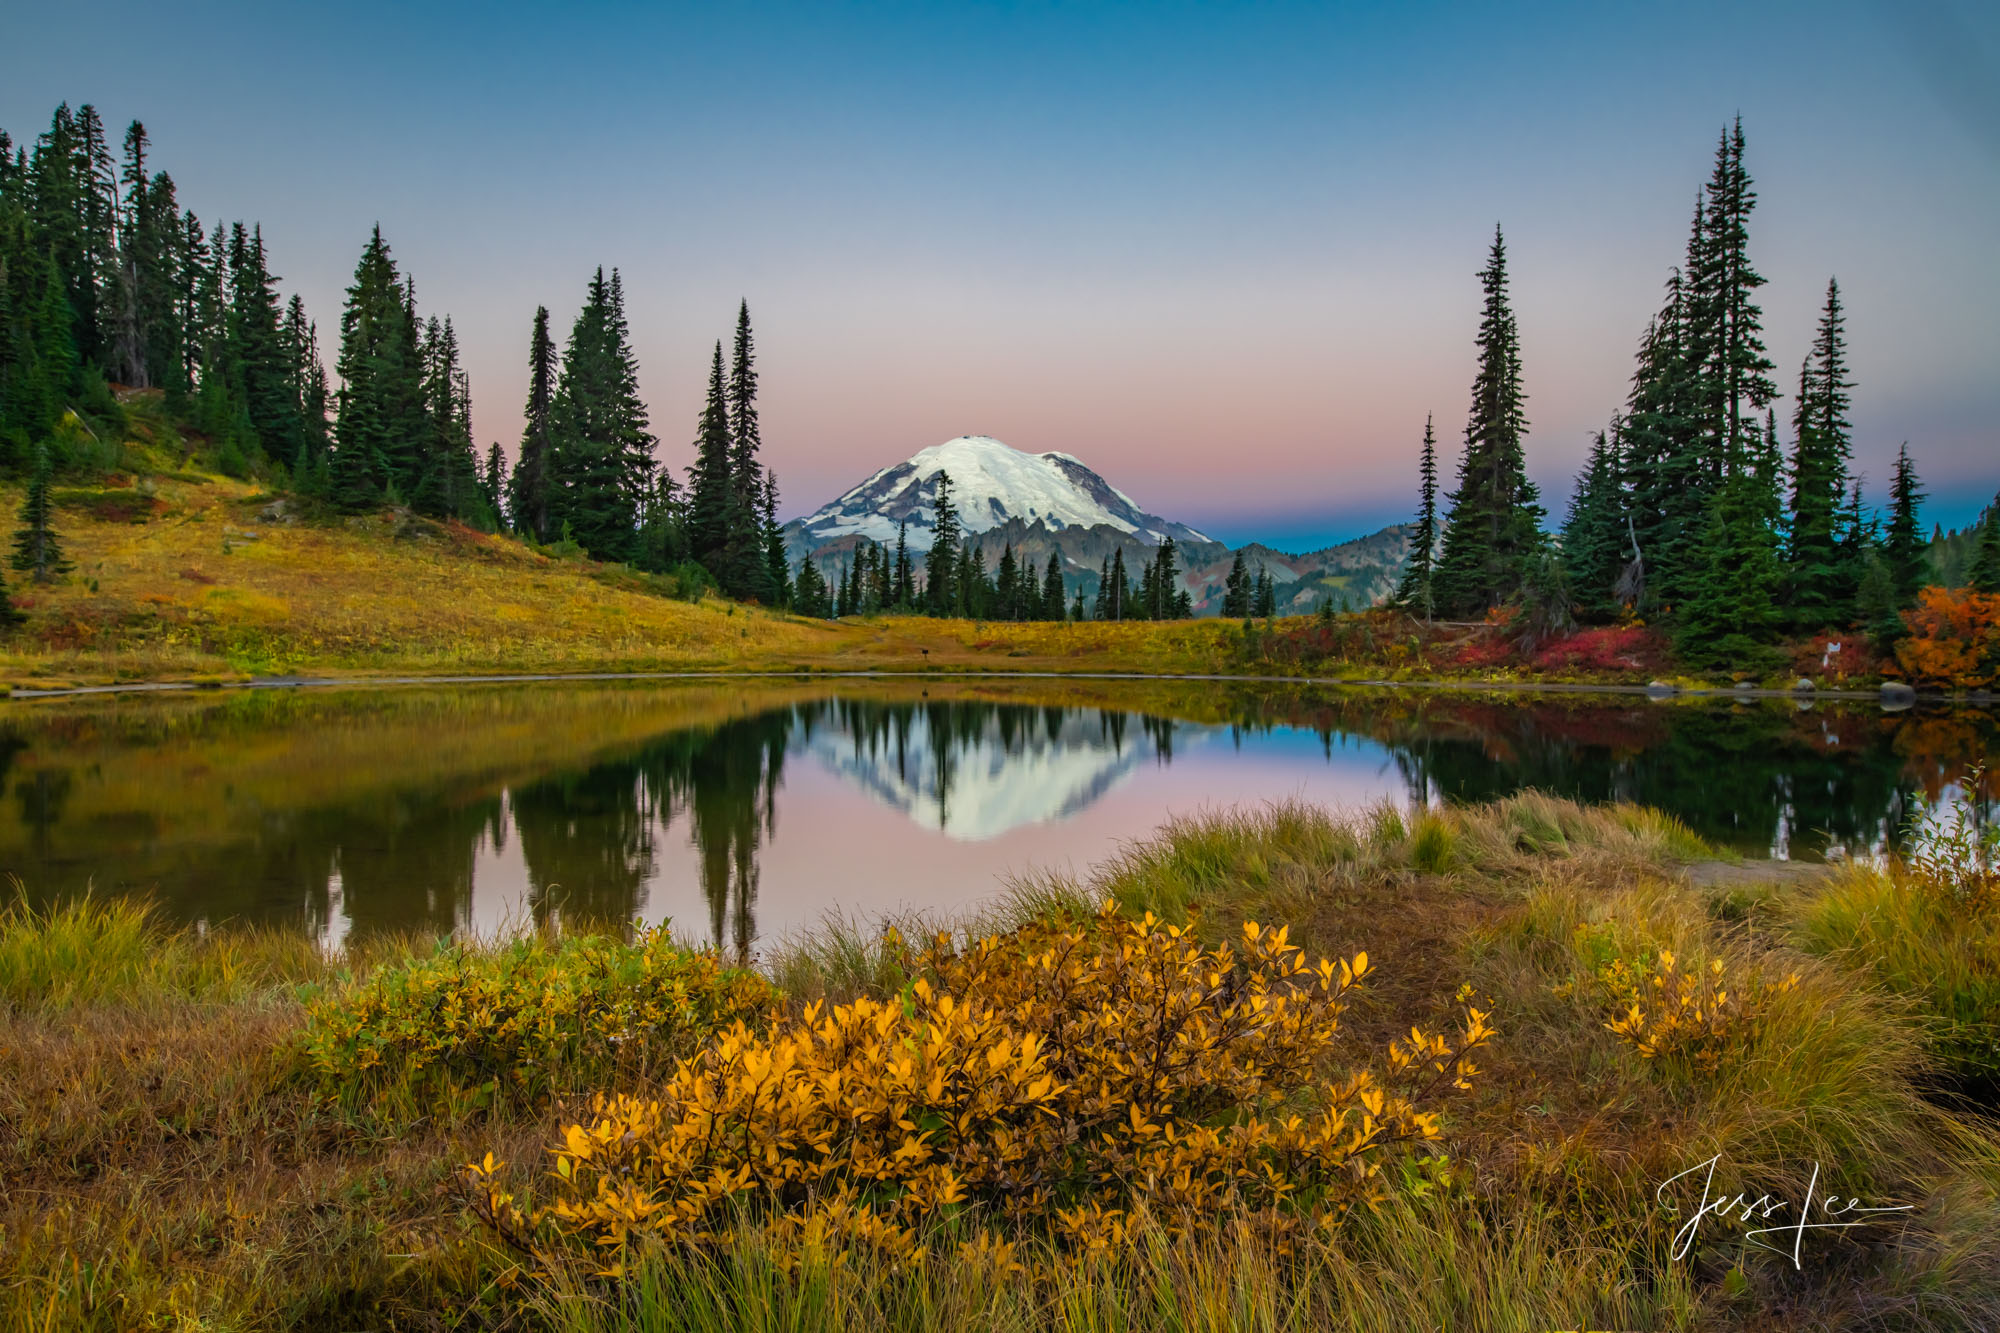 Mount Rainier at dawn reflecting in Tipsoo lake surrounded by the colors of autumn. Fine Art Limited Edition of 200 Prints.